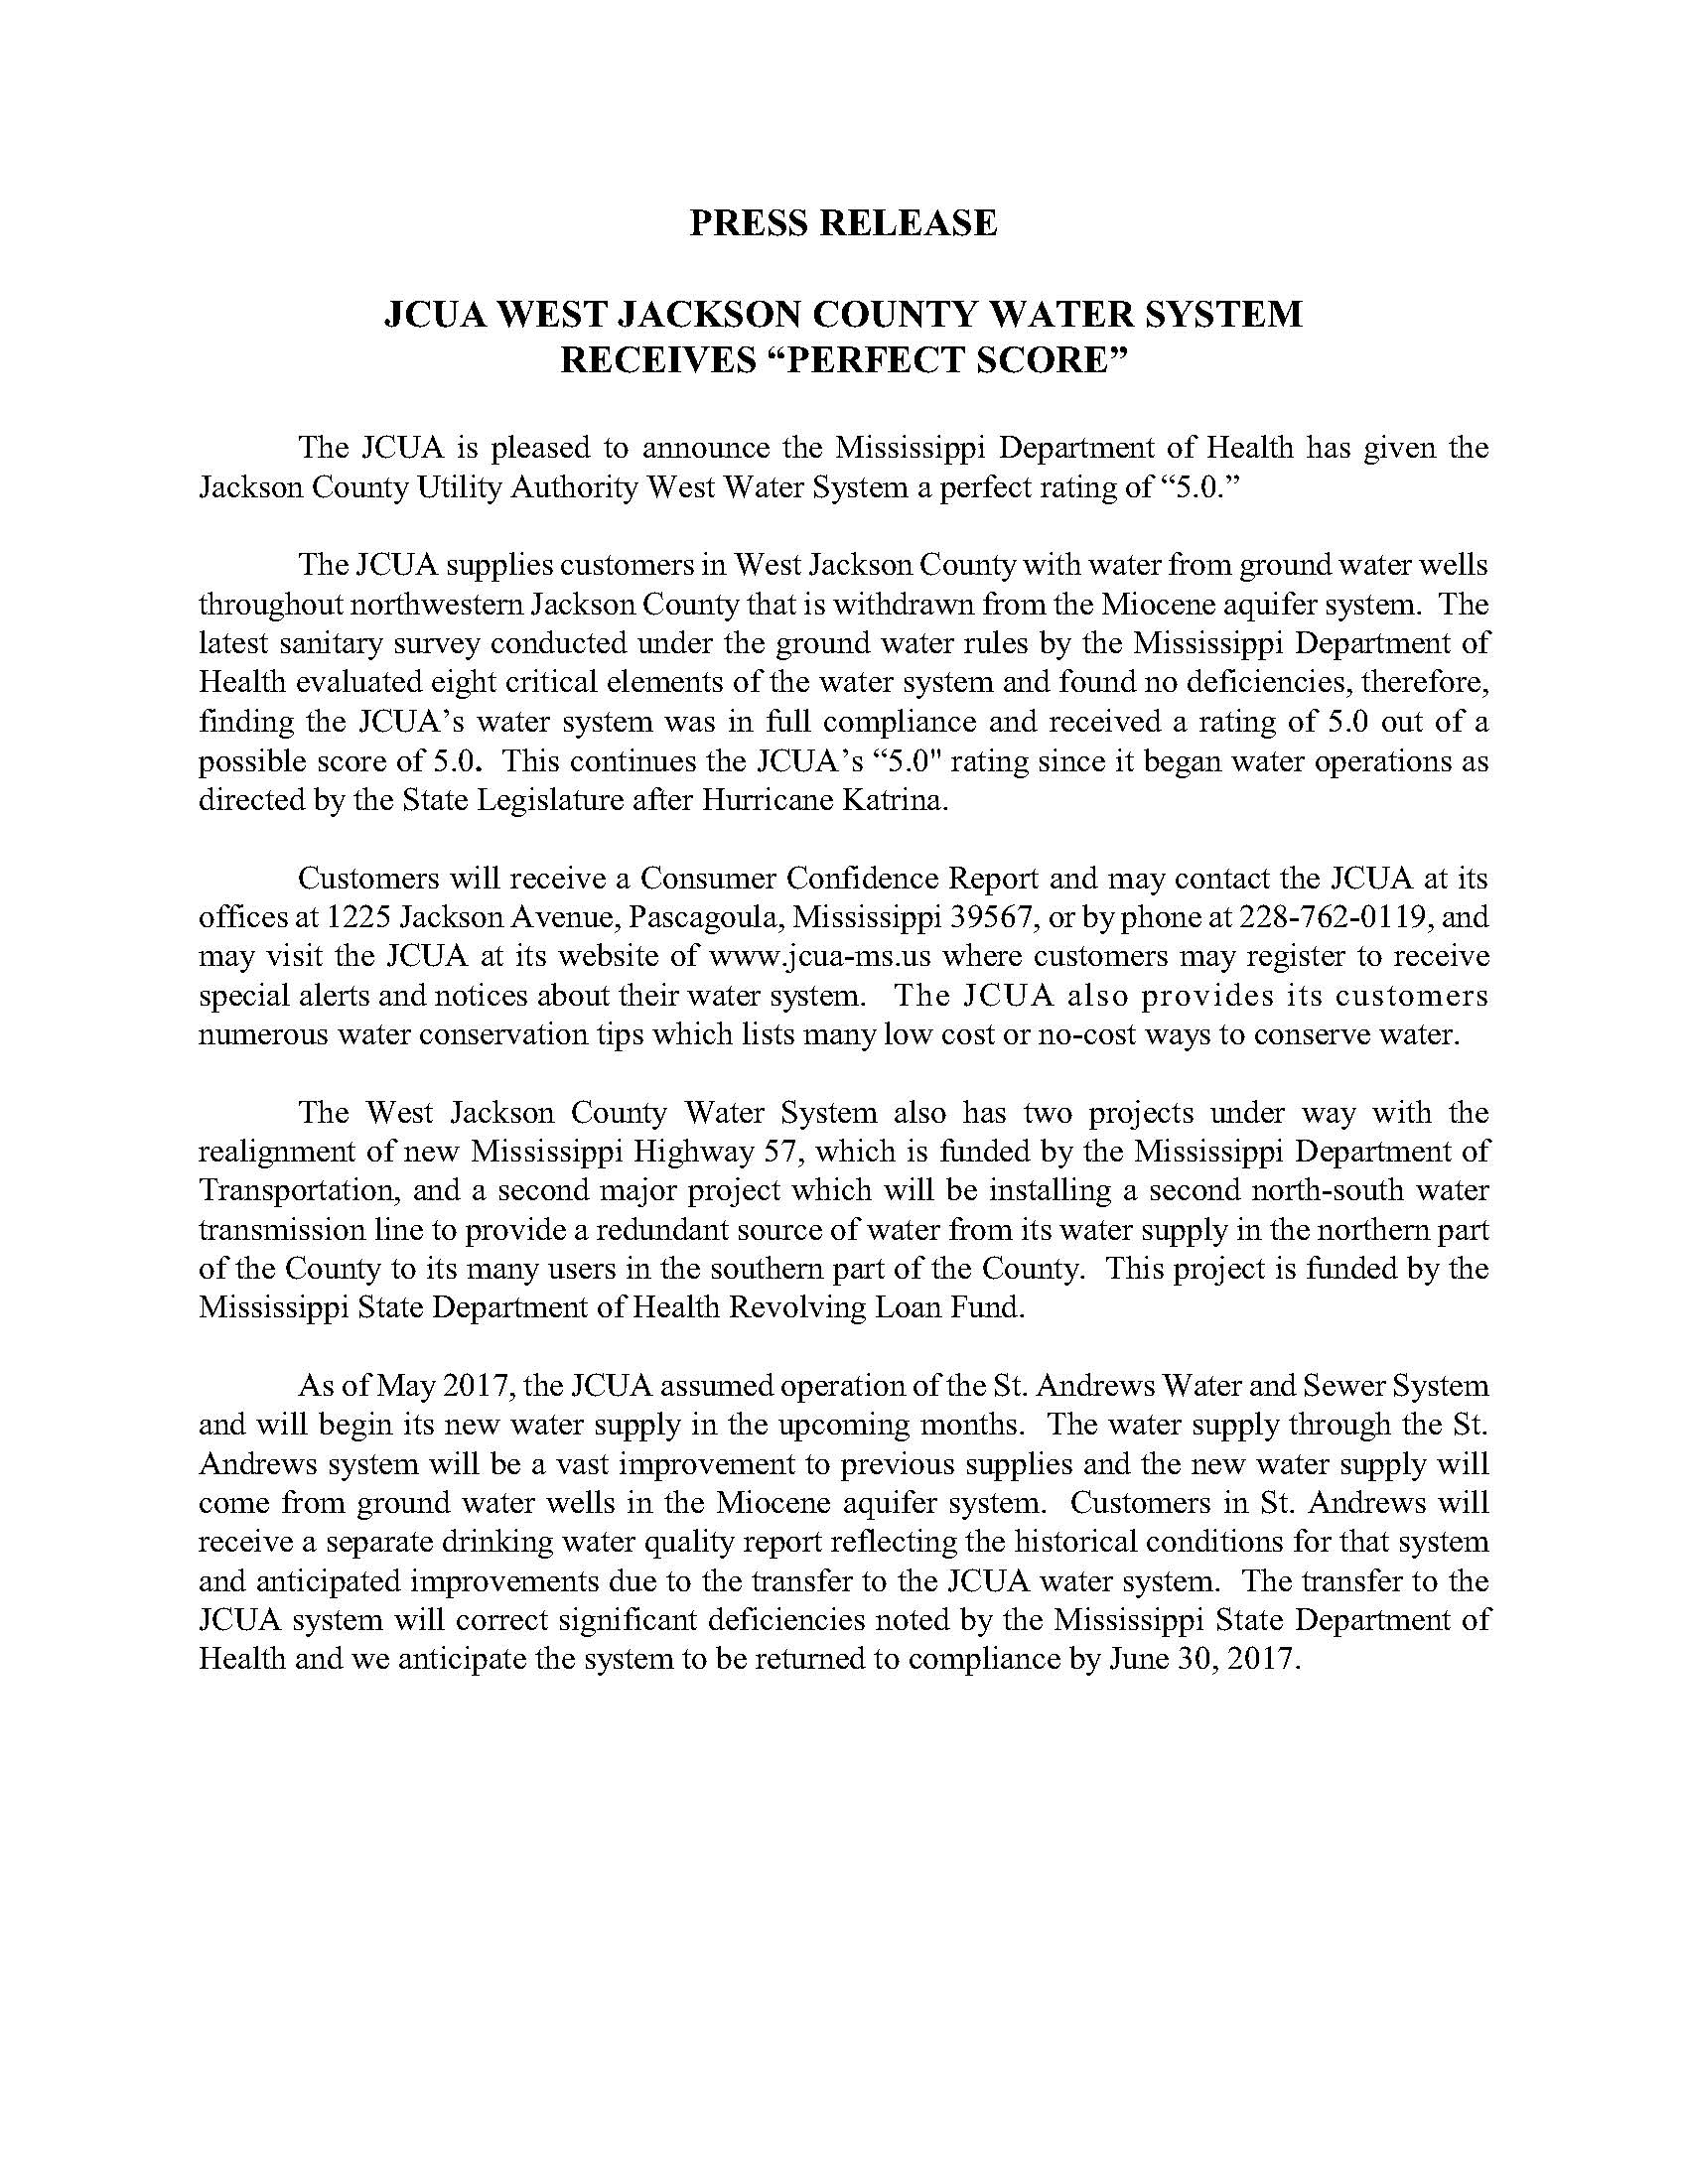 Mississippi jackson county escatawpa - Jcua West Water System Perfect Score